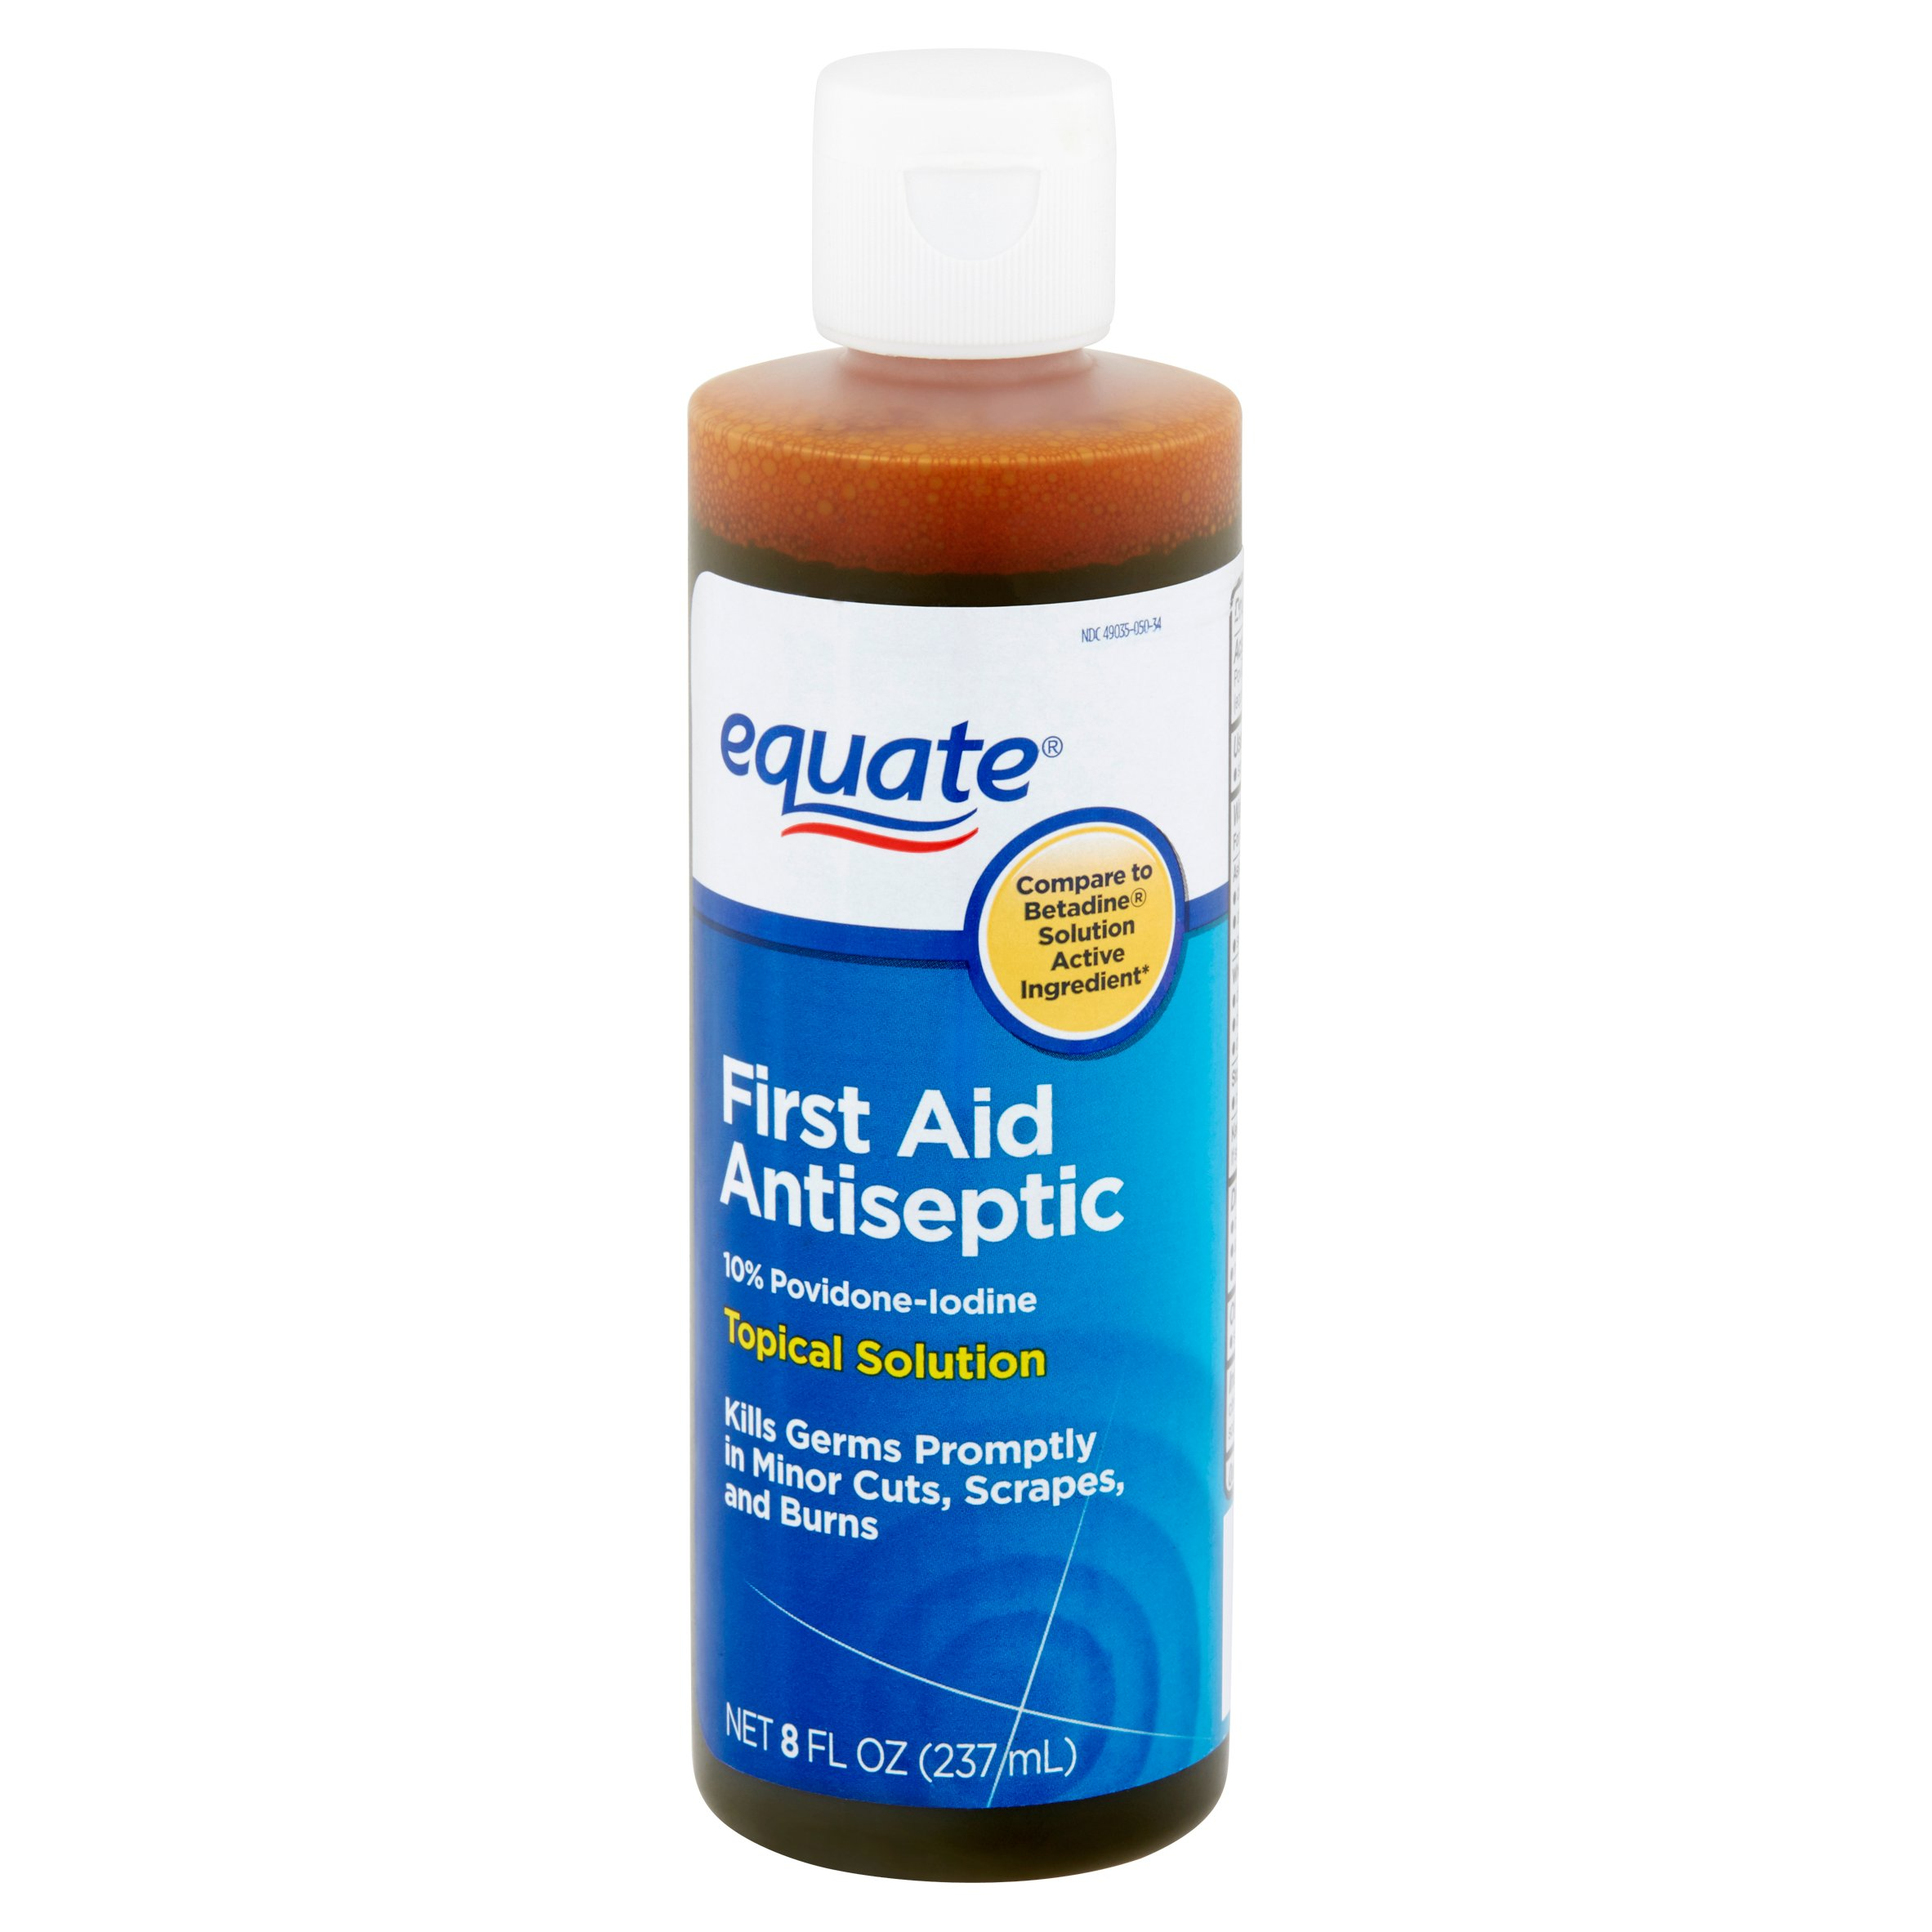 Equate First Aid Antiseptic Topical Solution, 8 Fl Oz